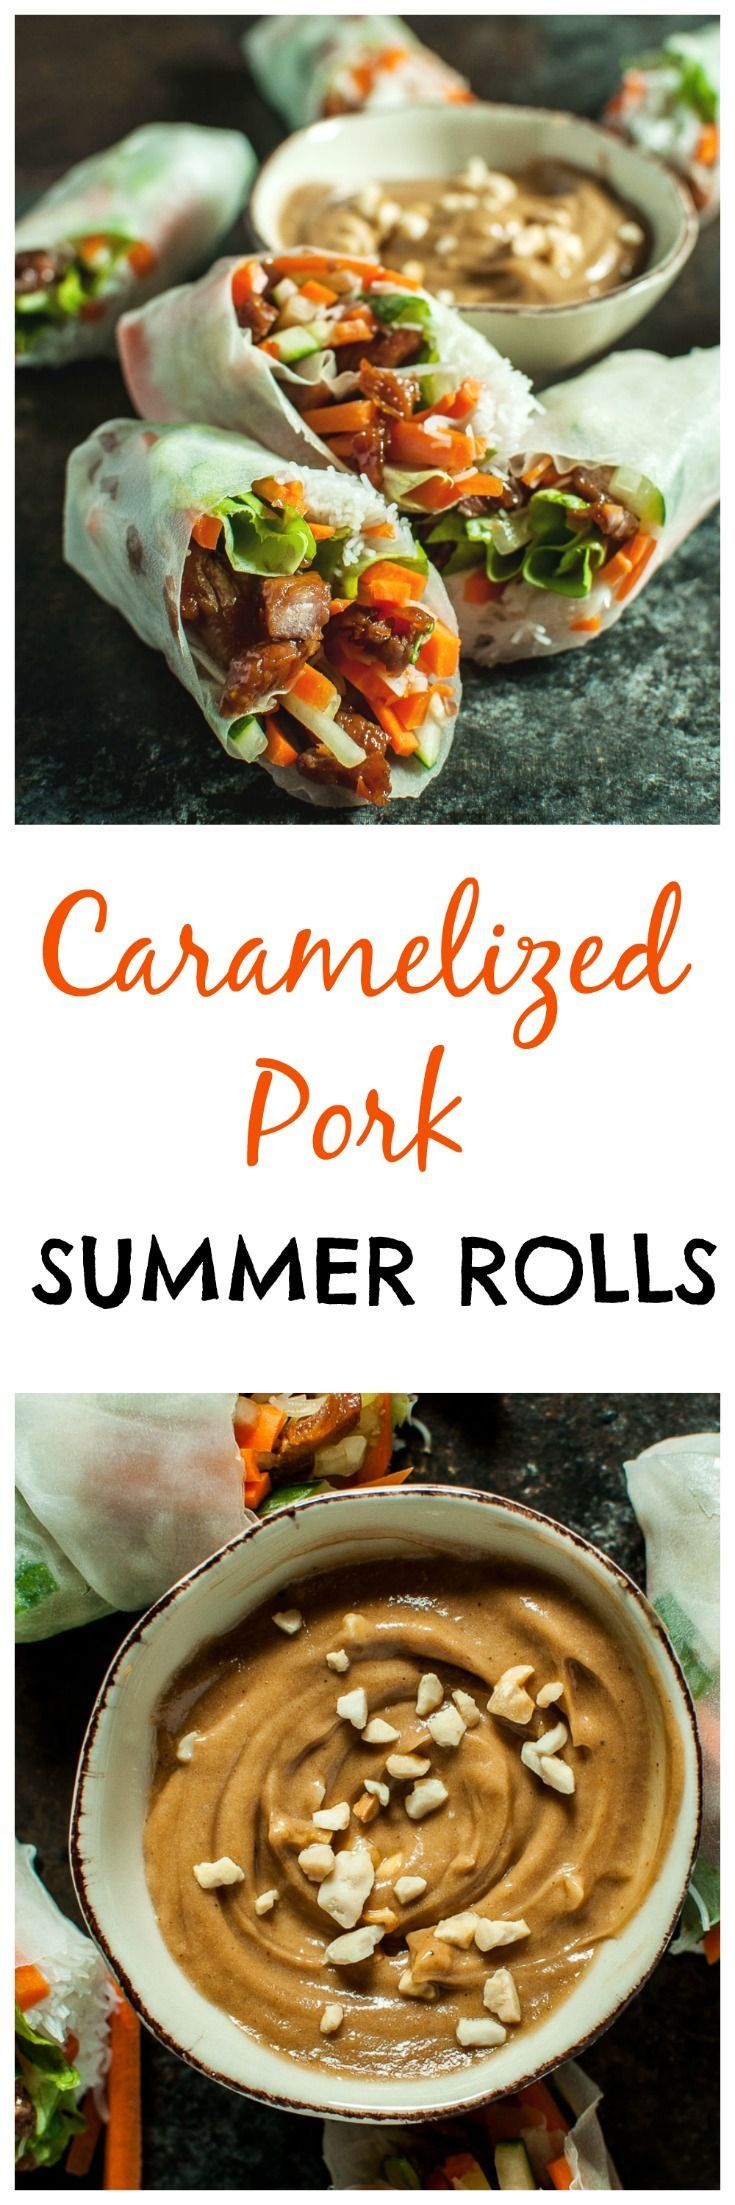 Pork Summer Rolls Sticky-sweet caramelized pork is complemented by crisp lettuce, carrots, and cucumber and wrapped in rice paper with vermicelli. The creamy peanut sauce makes the perfect dip for these fresh summer rolls.Sticky-sweet caramelized pork is complemented by crisp lettuce, carrots, and cucumber and wrapped in rice paper with ...